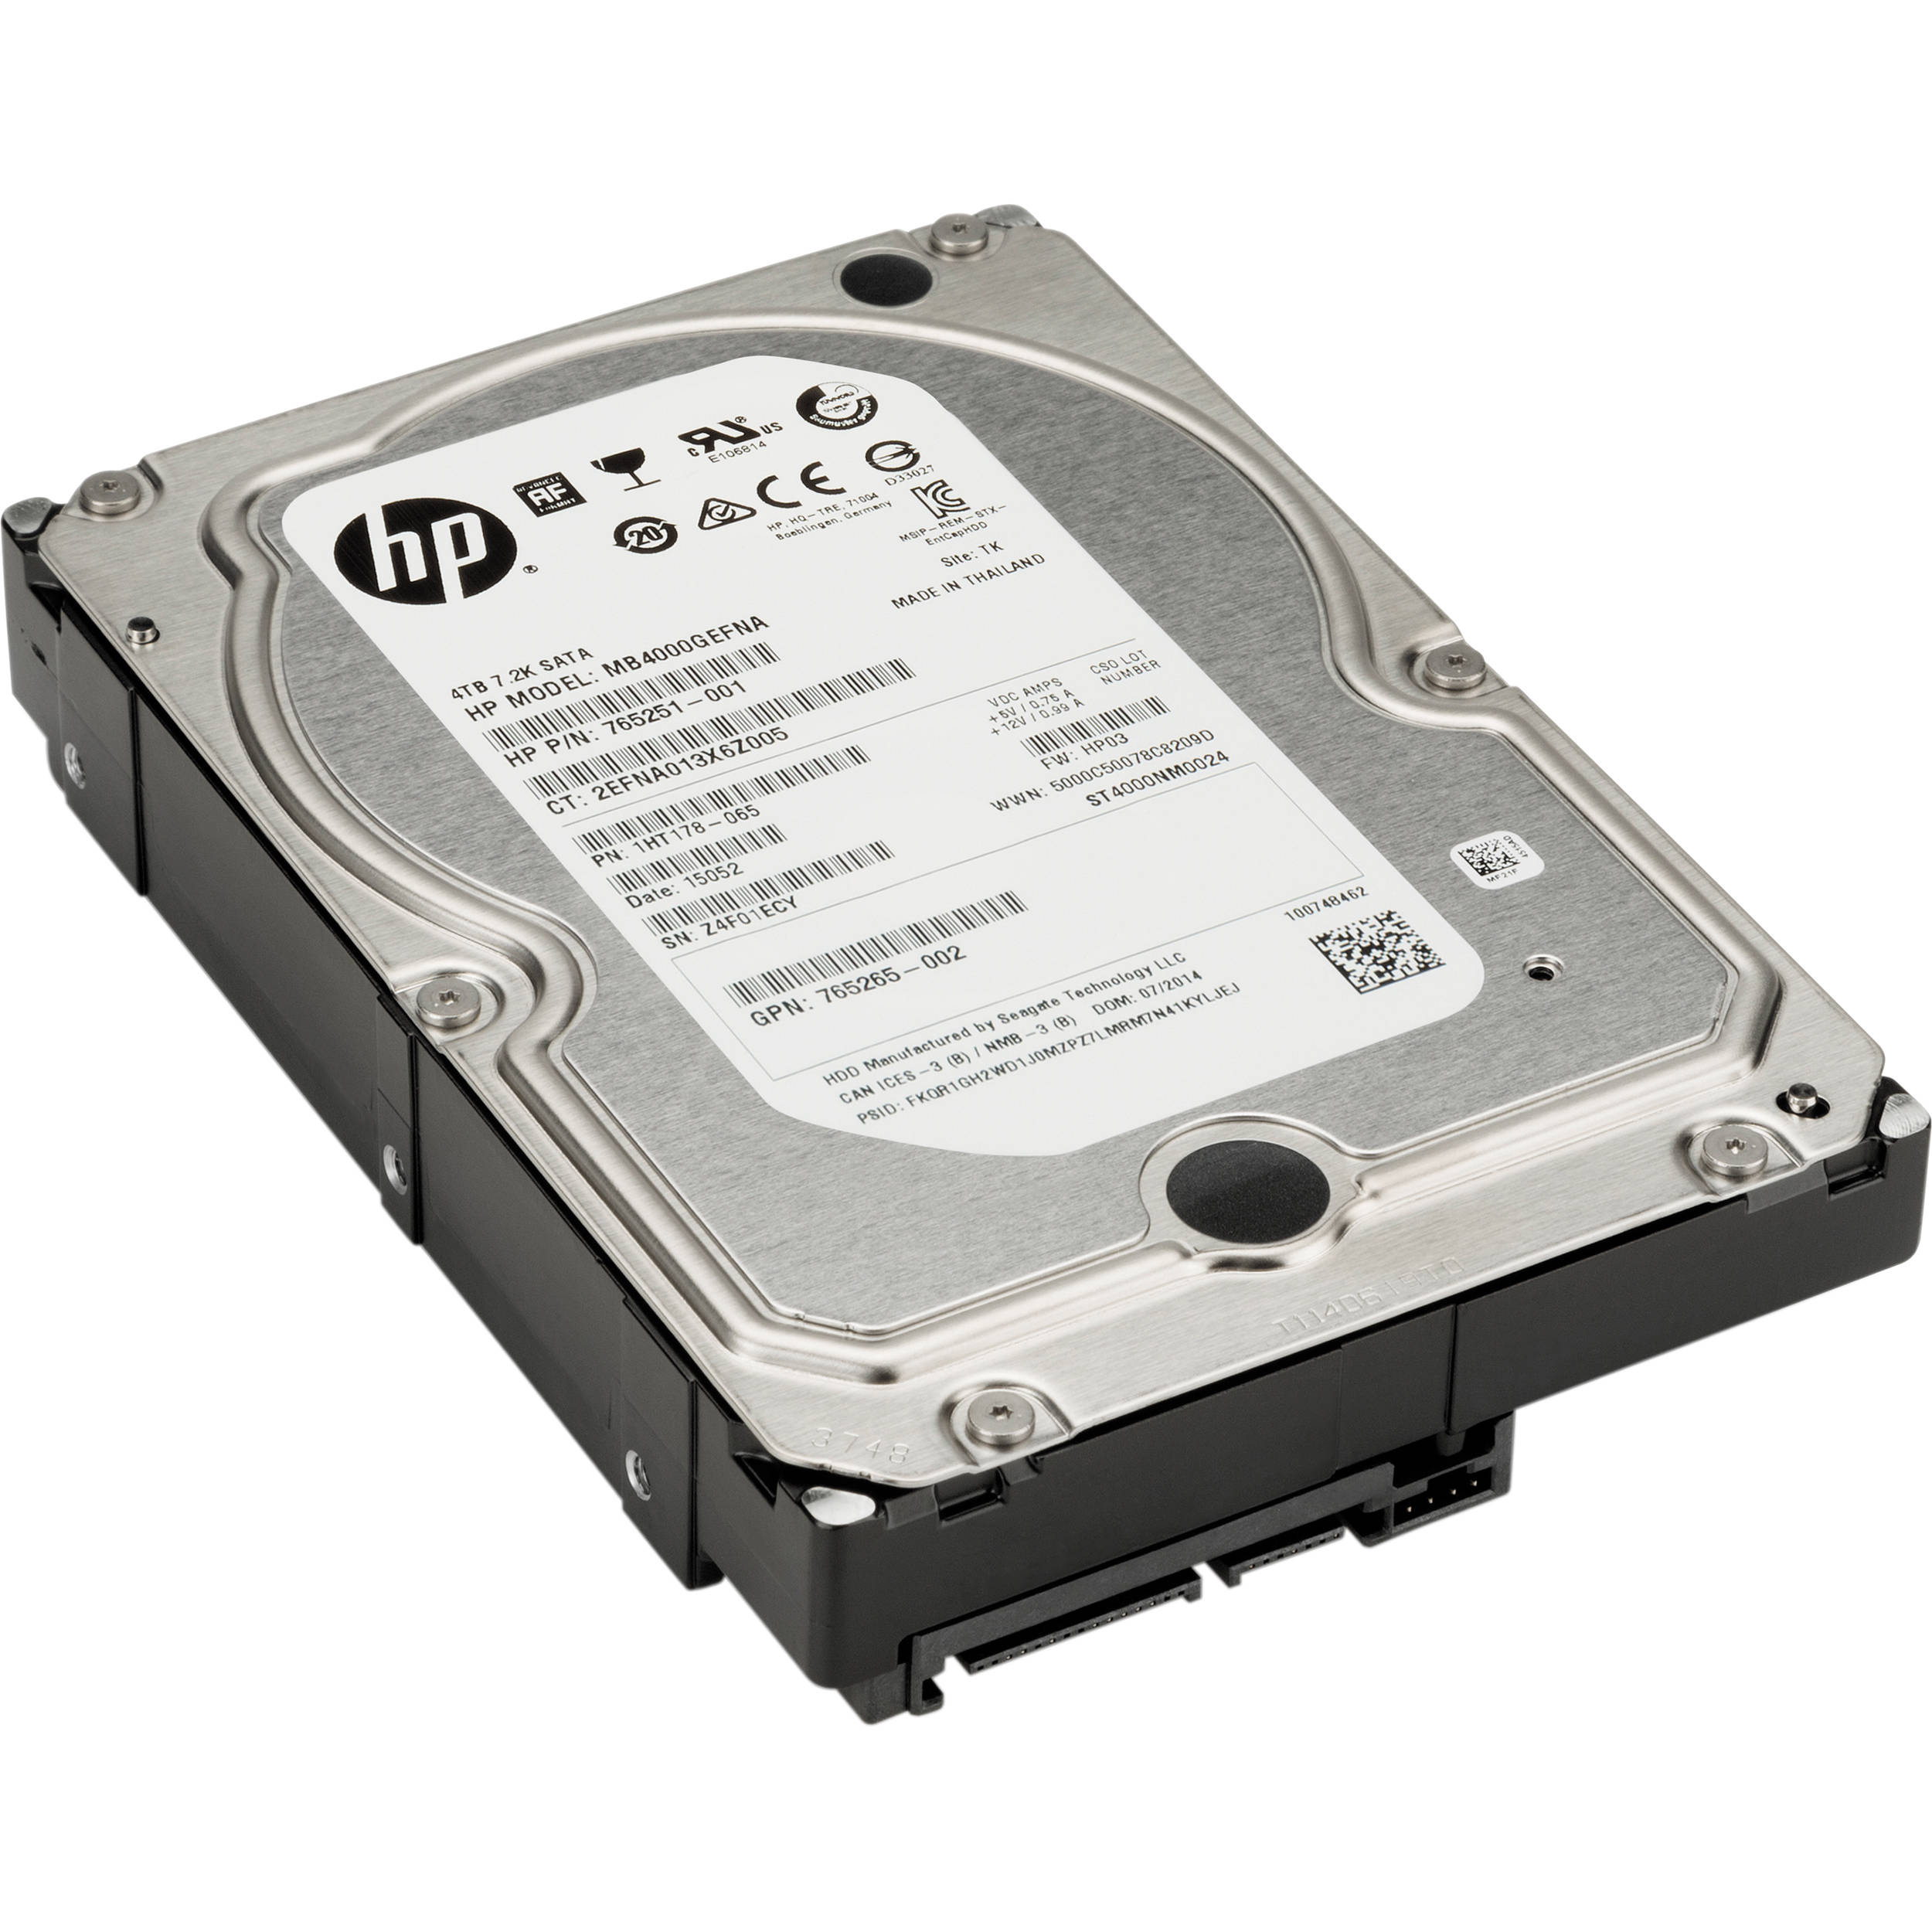 HP 4TB 7200 rpm SATA Hard Drive K4T76AA B&H Photo Video